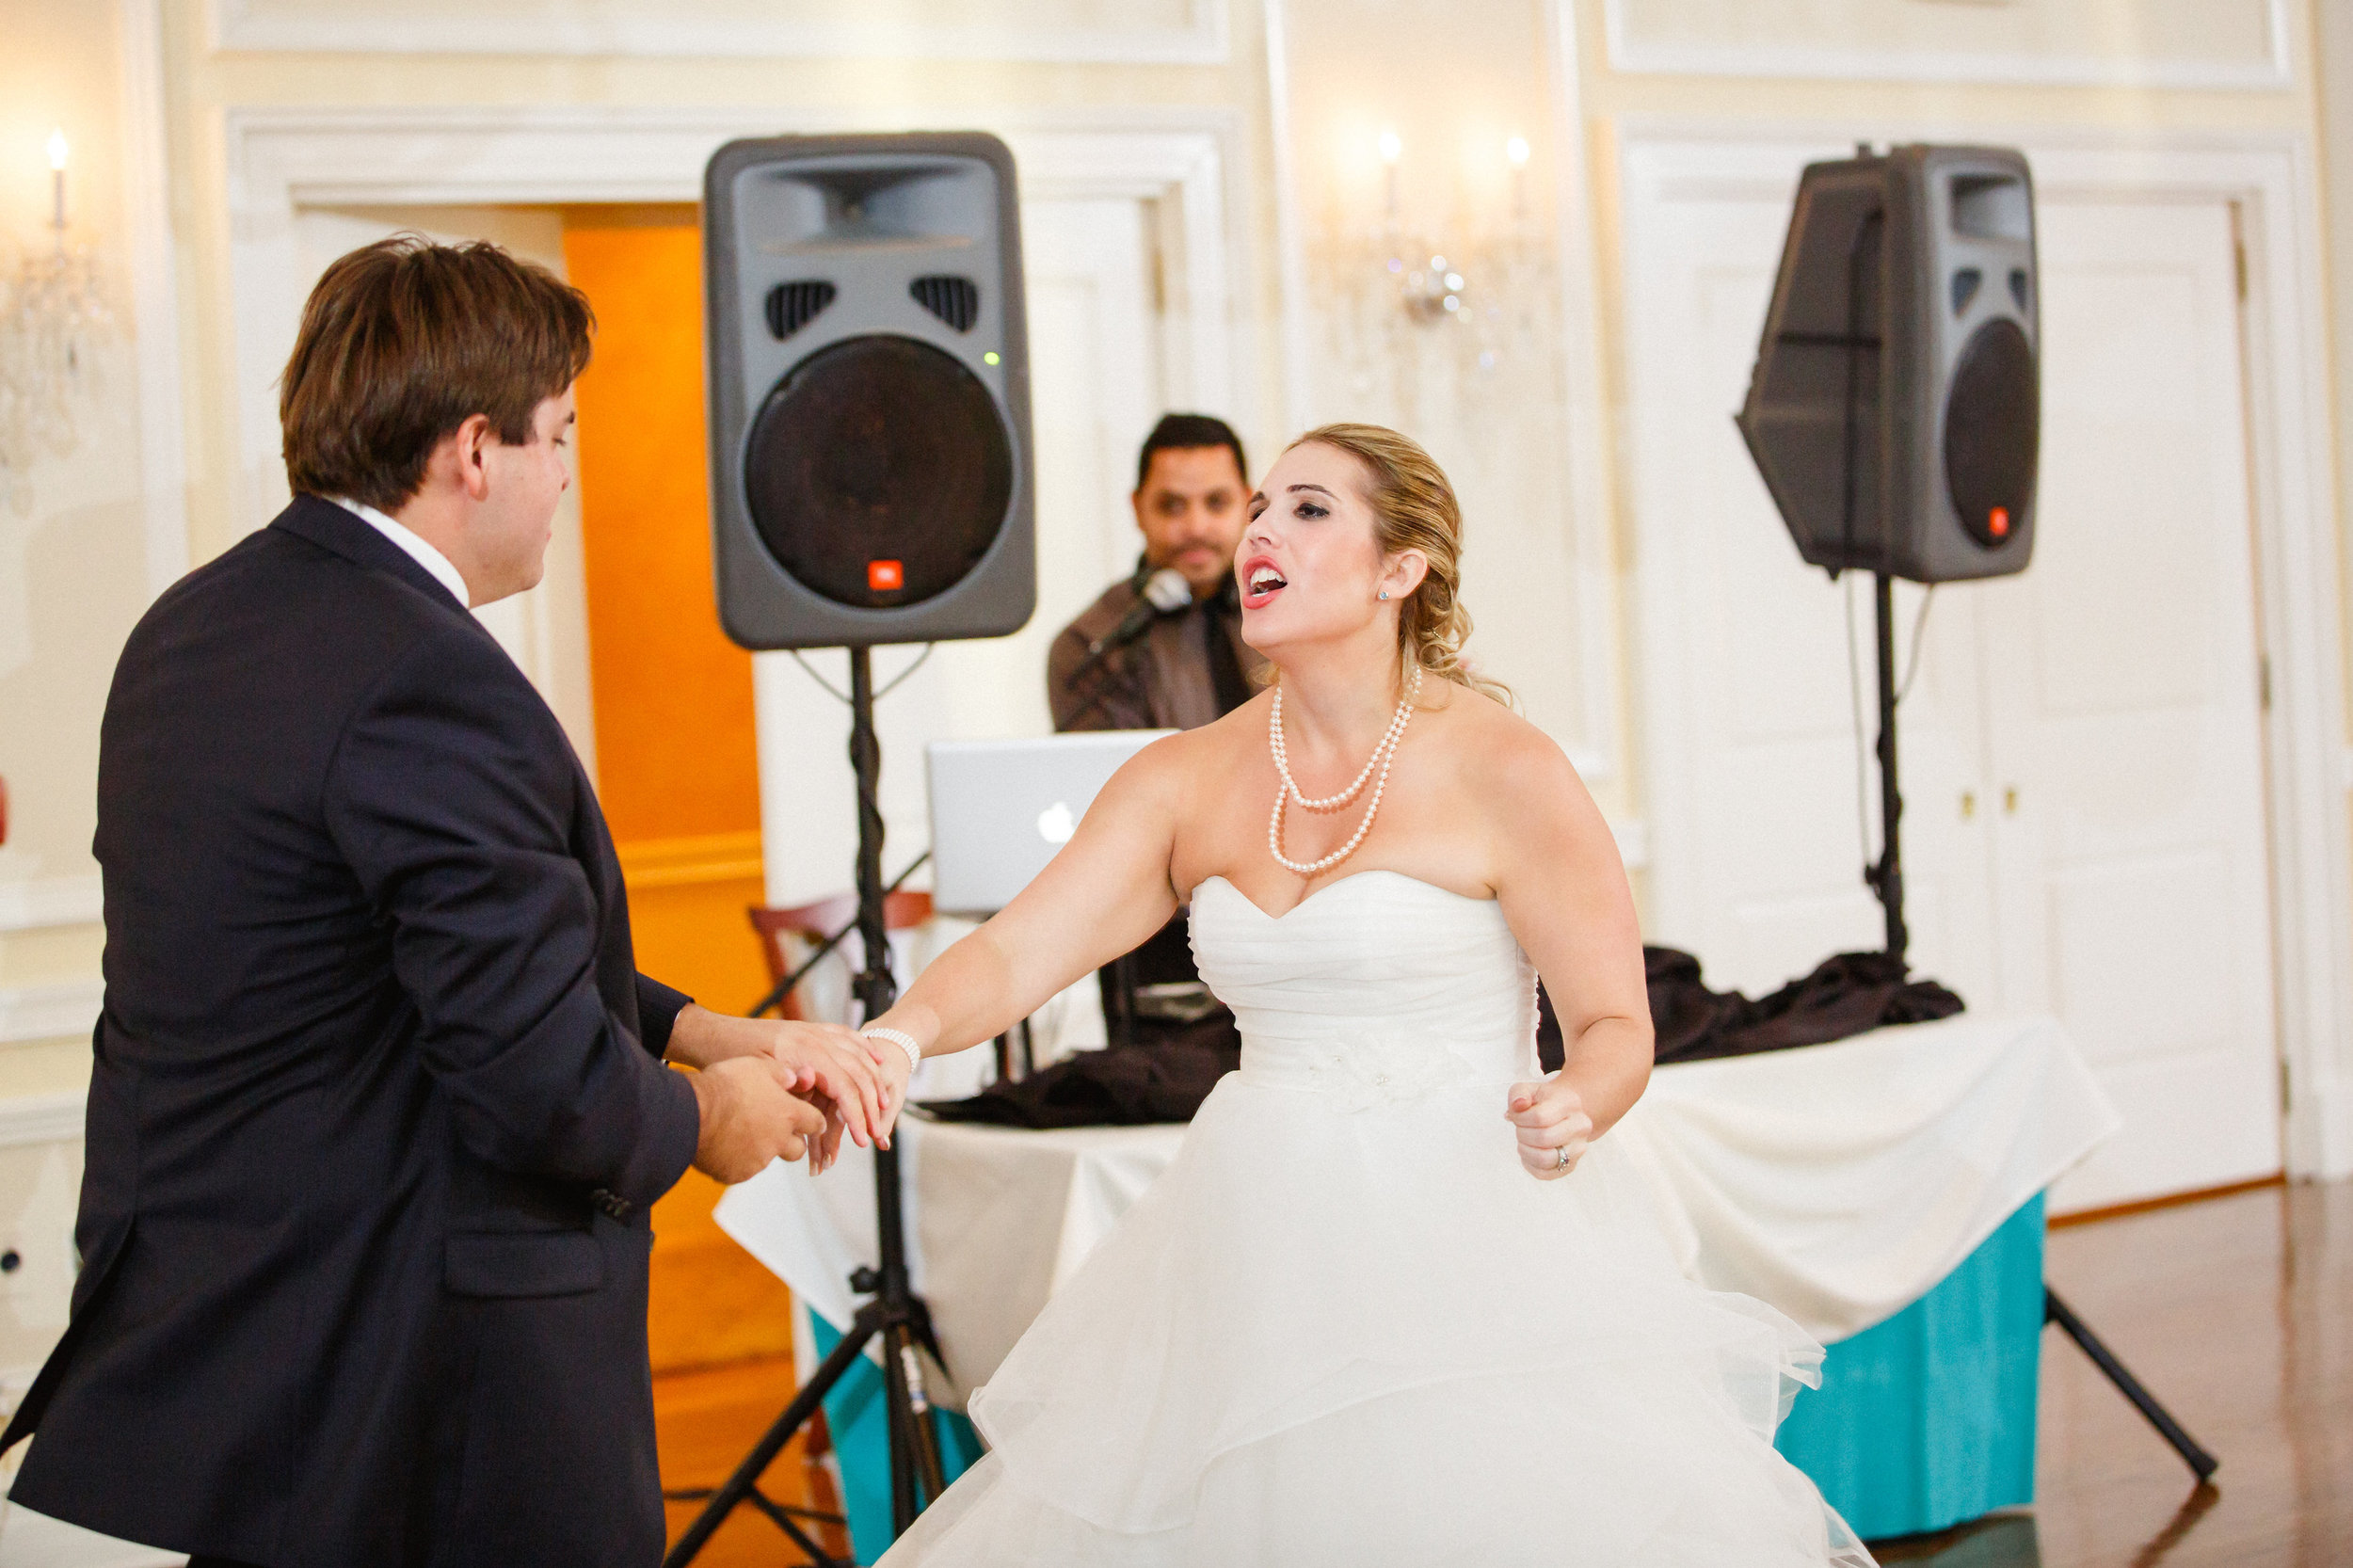 Vness-Photography-Chevy-Chase-Country-Club-A&R-Wedding-543.jpg